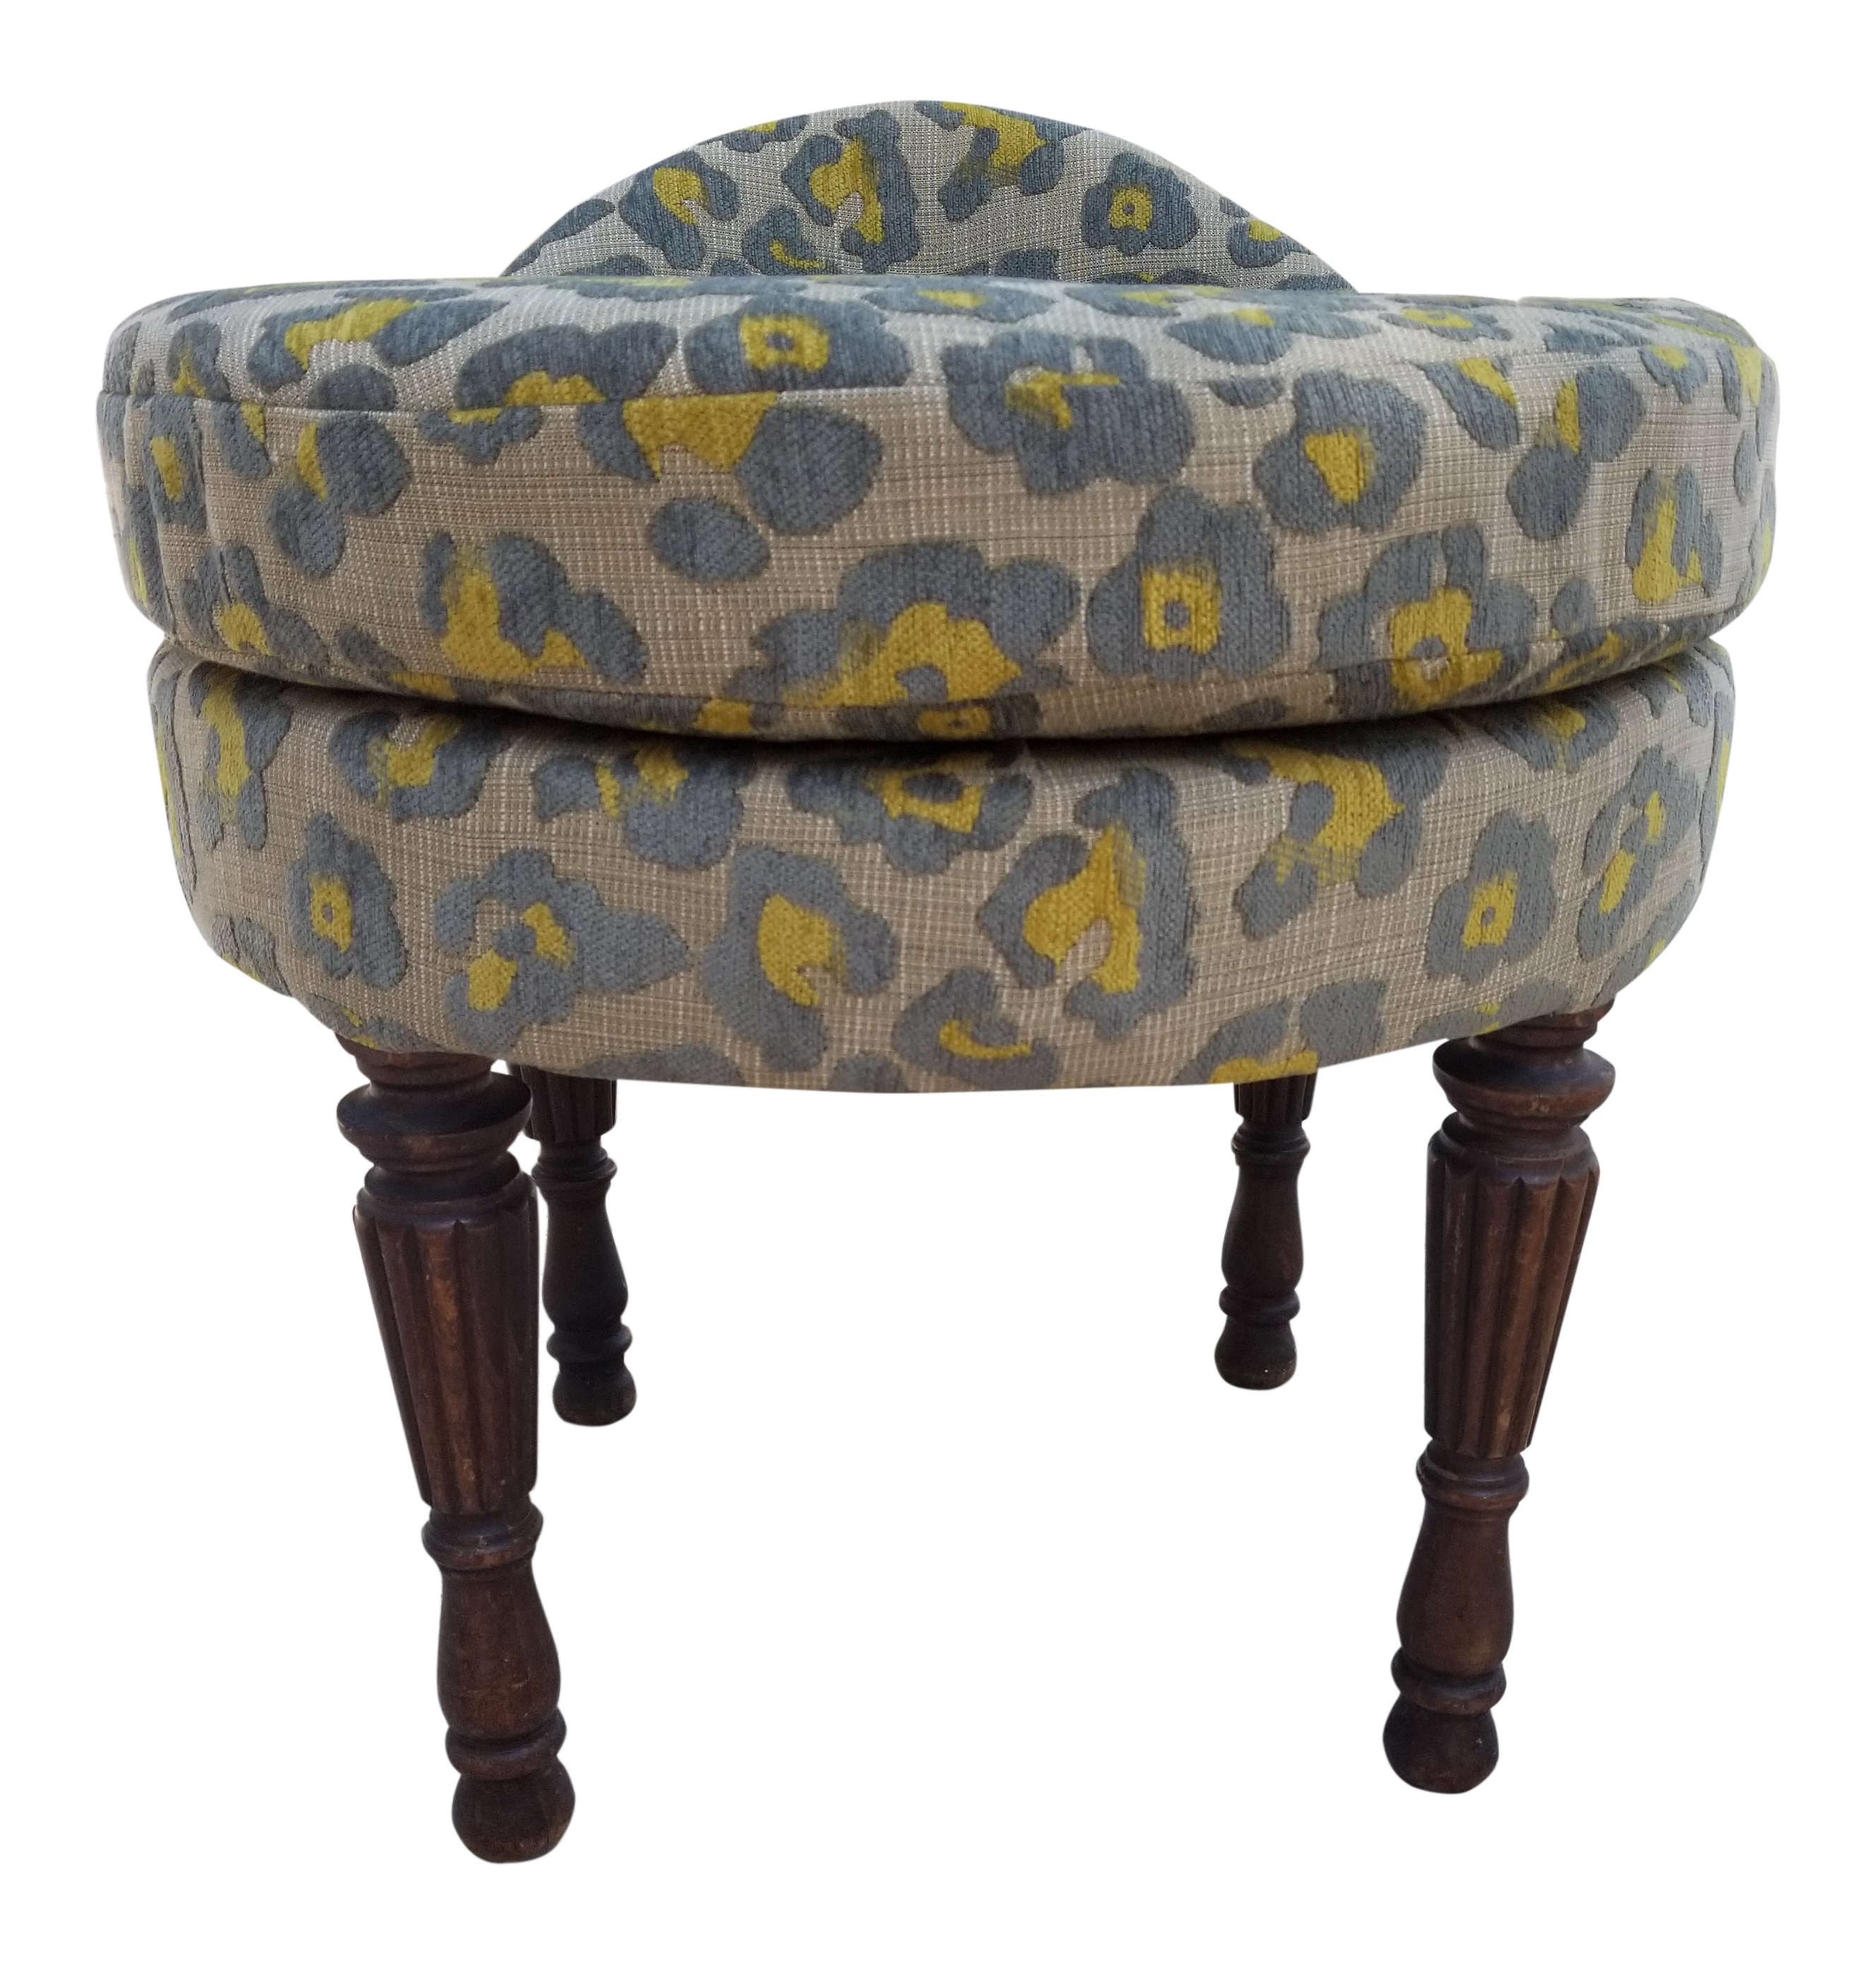 leopard hide f ottoman seating zebra id print bench furniture ottomans custom at poufs cocktail master upholstered